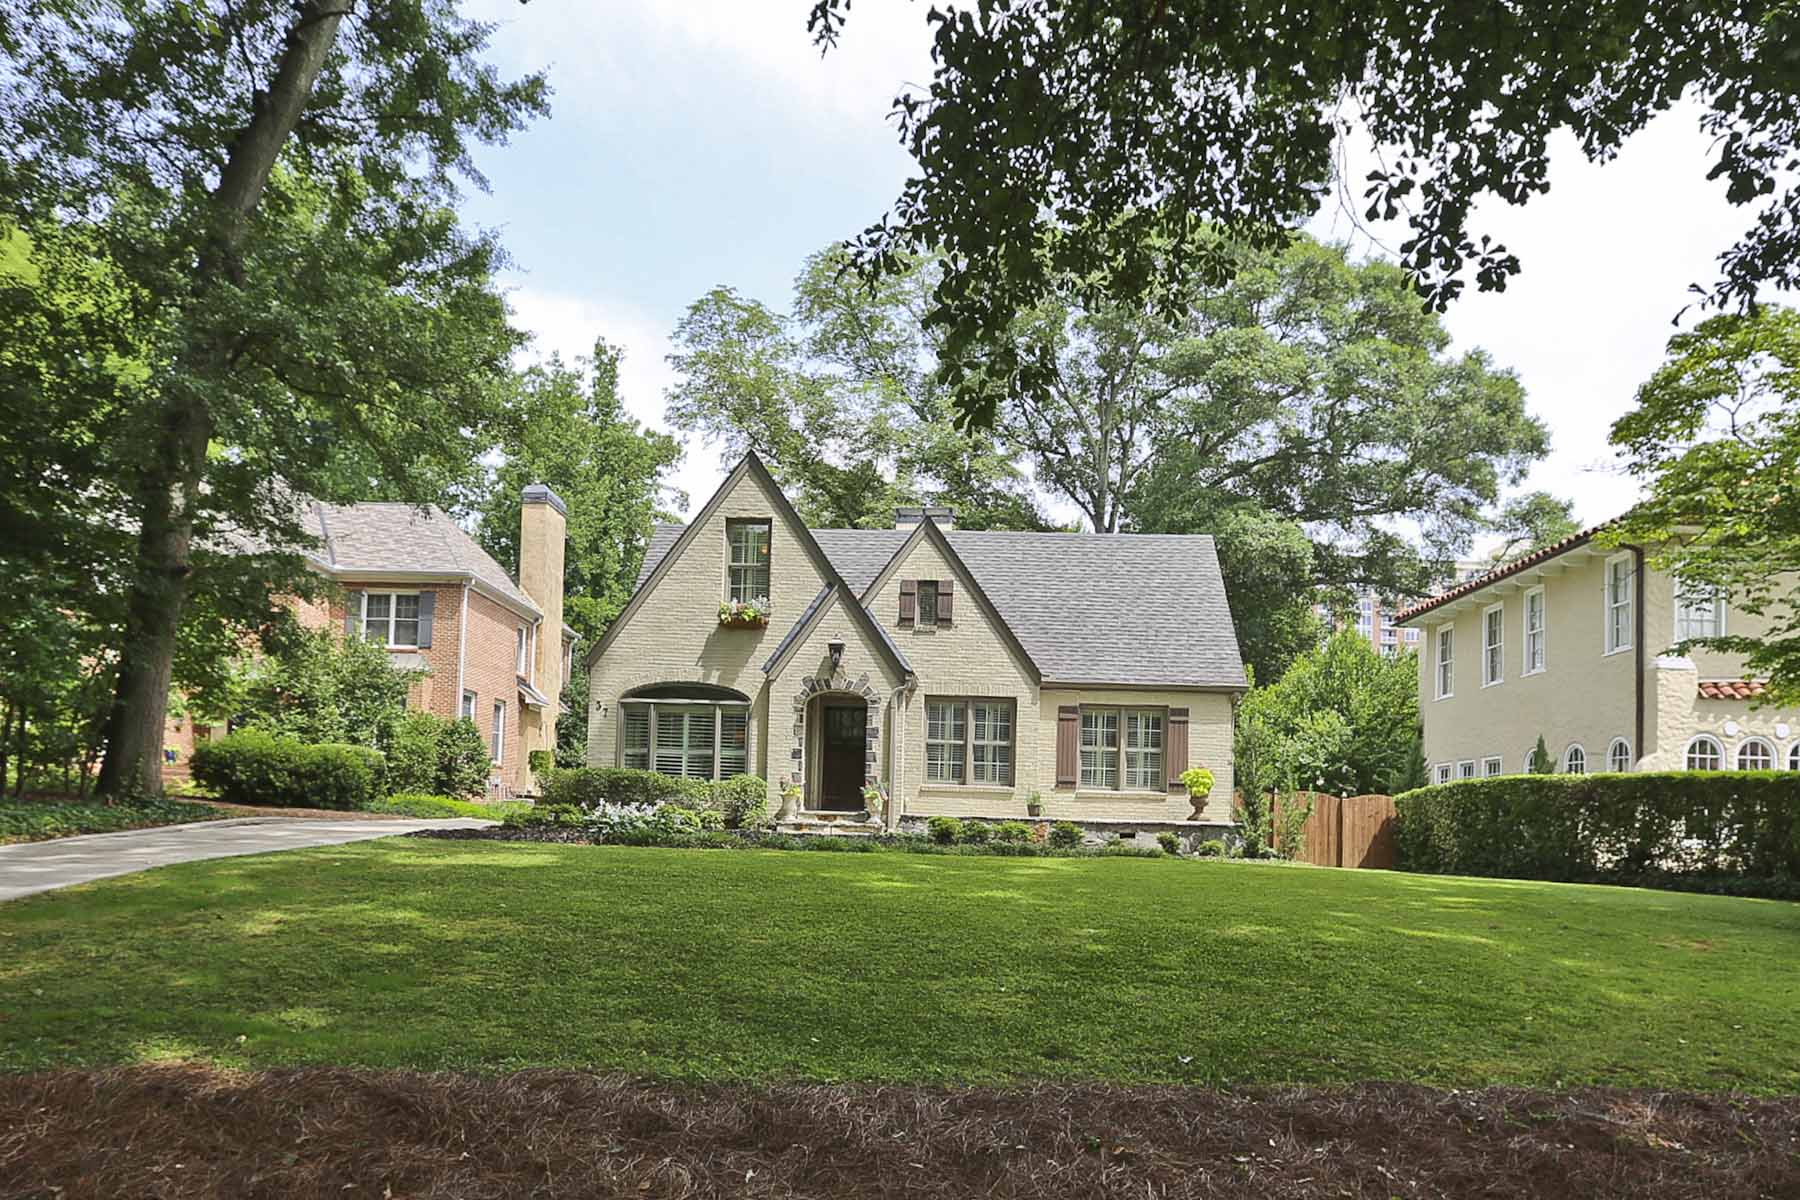 Moradia para Venda às Immaculately renovated brick Tudor-style home nestled in desirable Brookwood. 37 26th Street NW Brookwood, Atlanta, Geórgia 30309 Estados Unidos